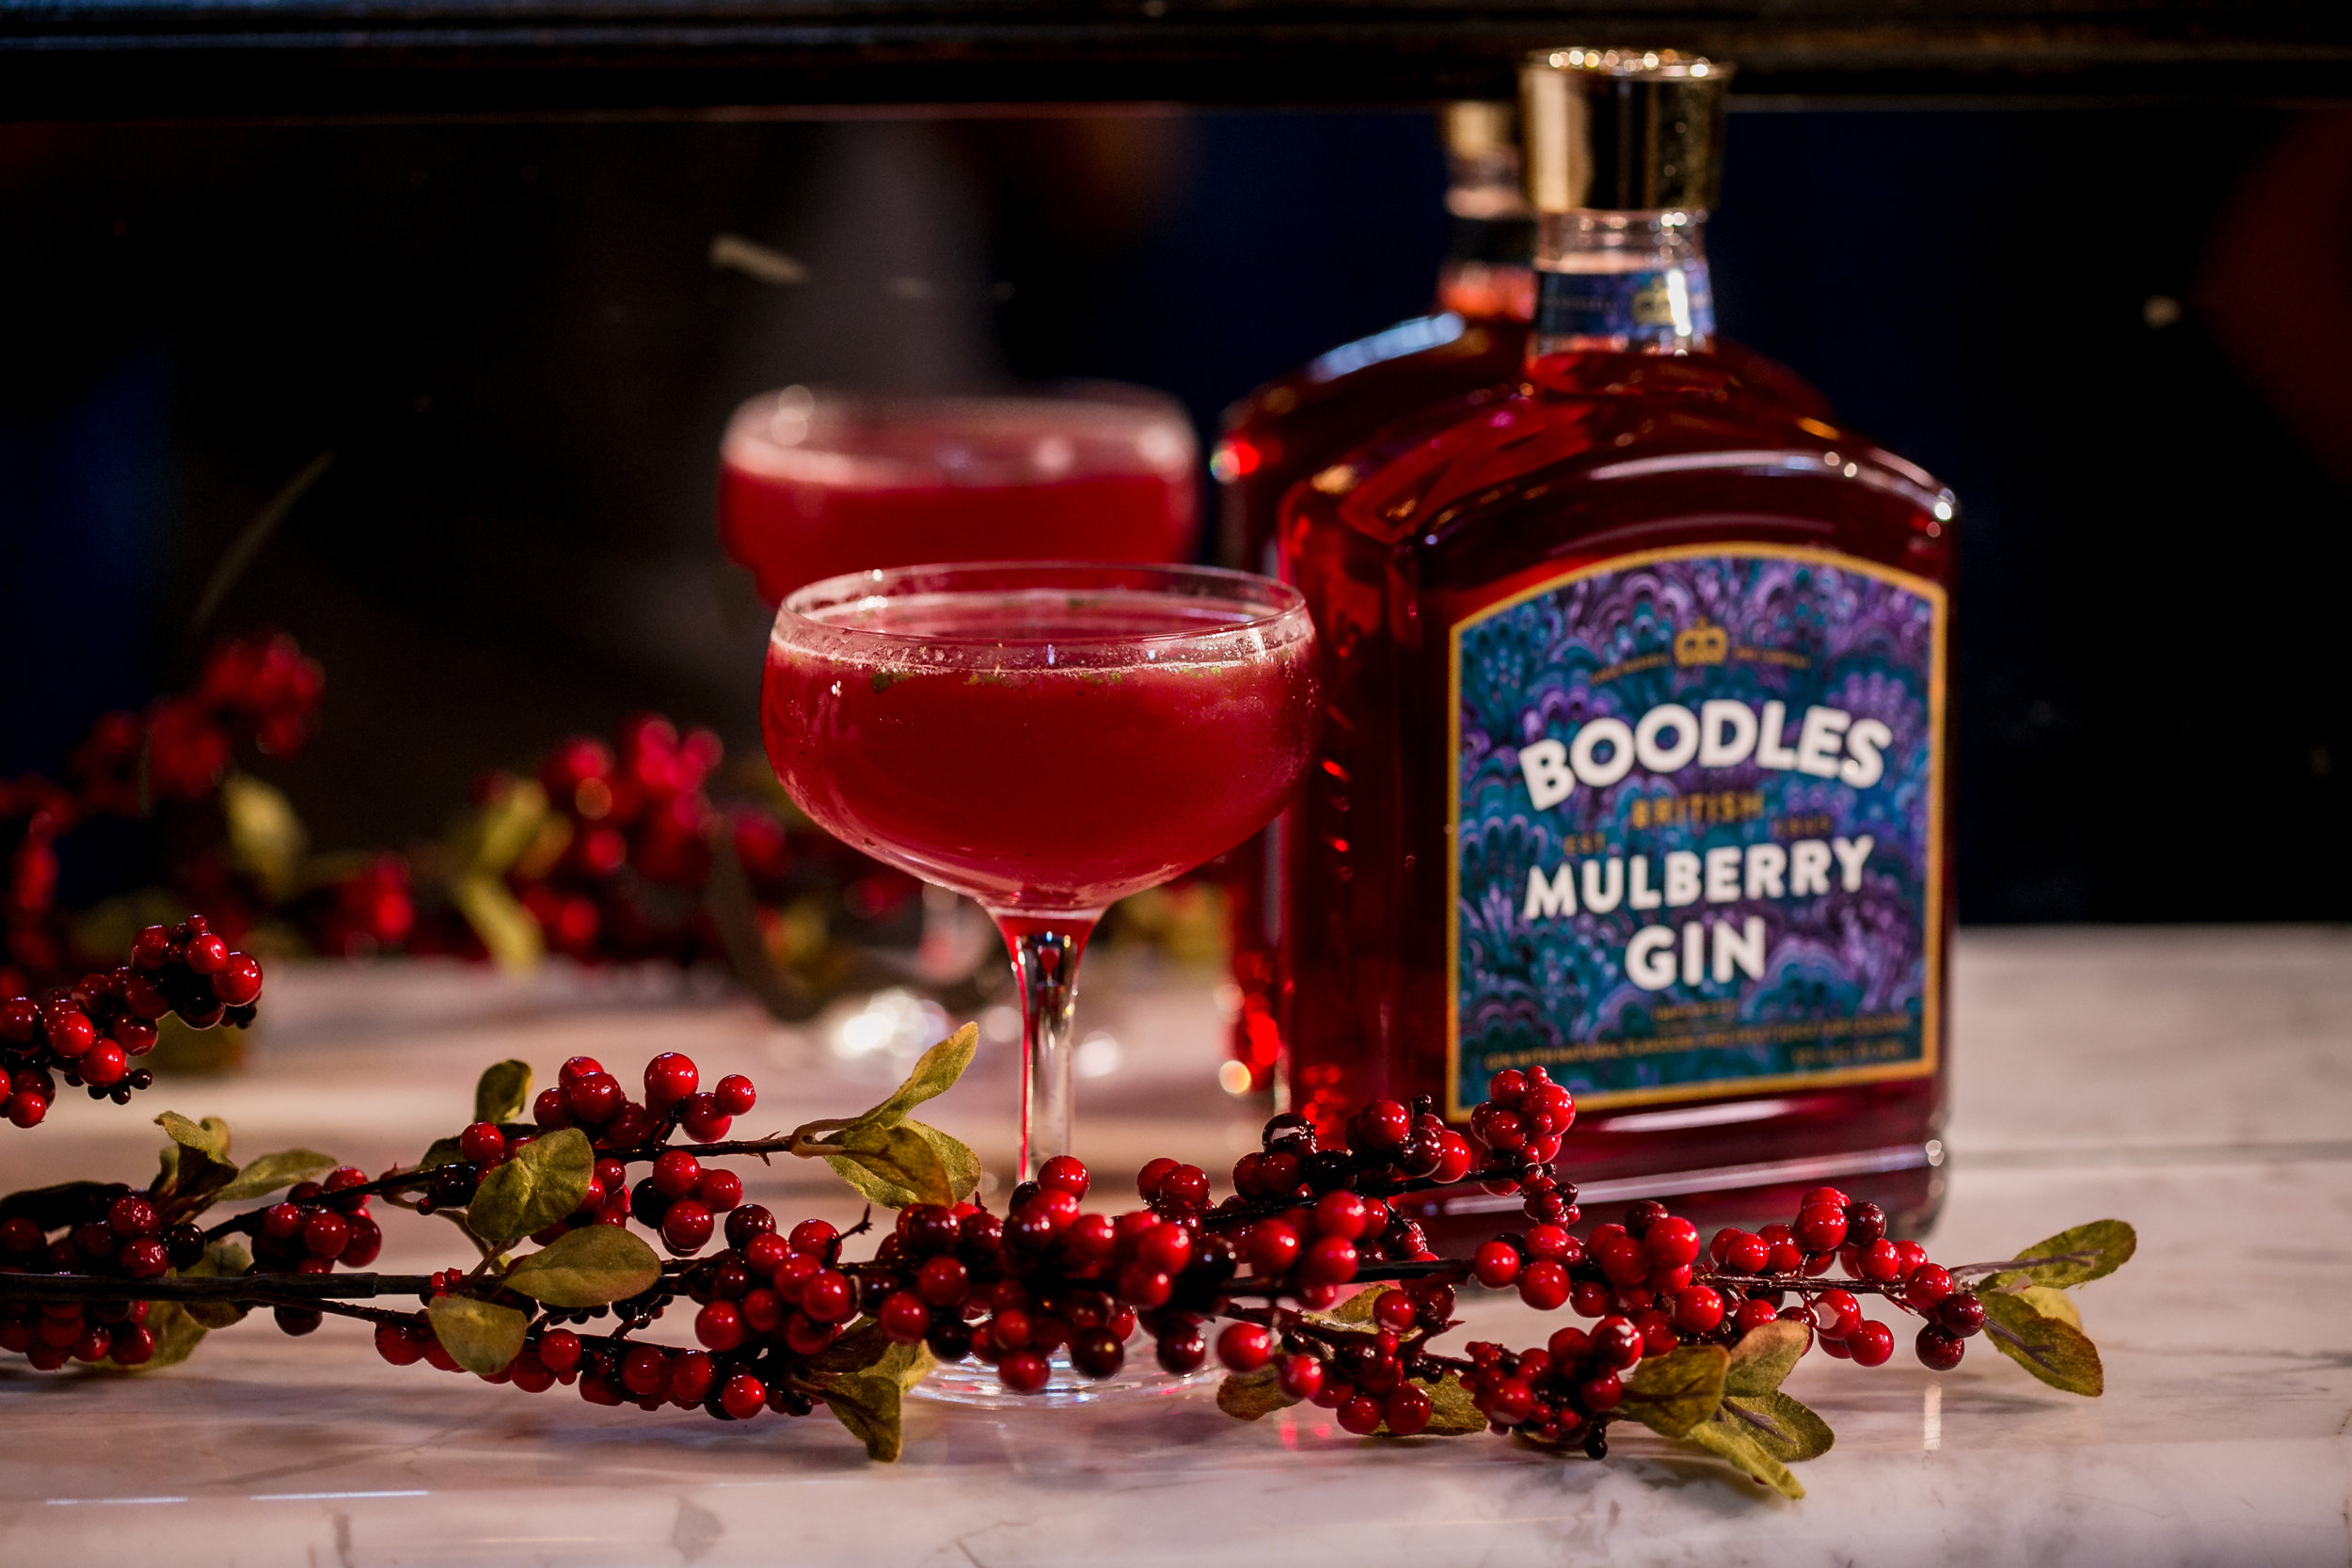 Public Relations for Boodles Gin.